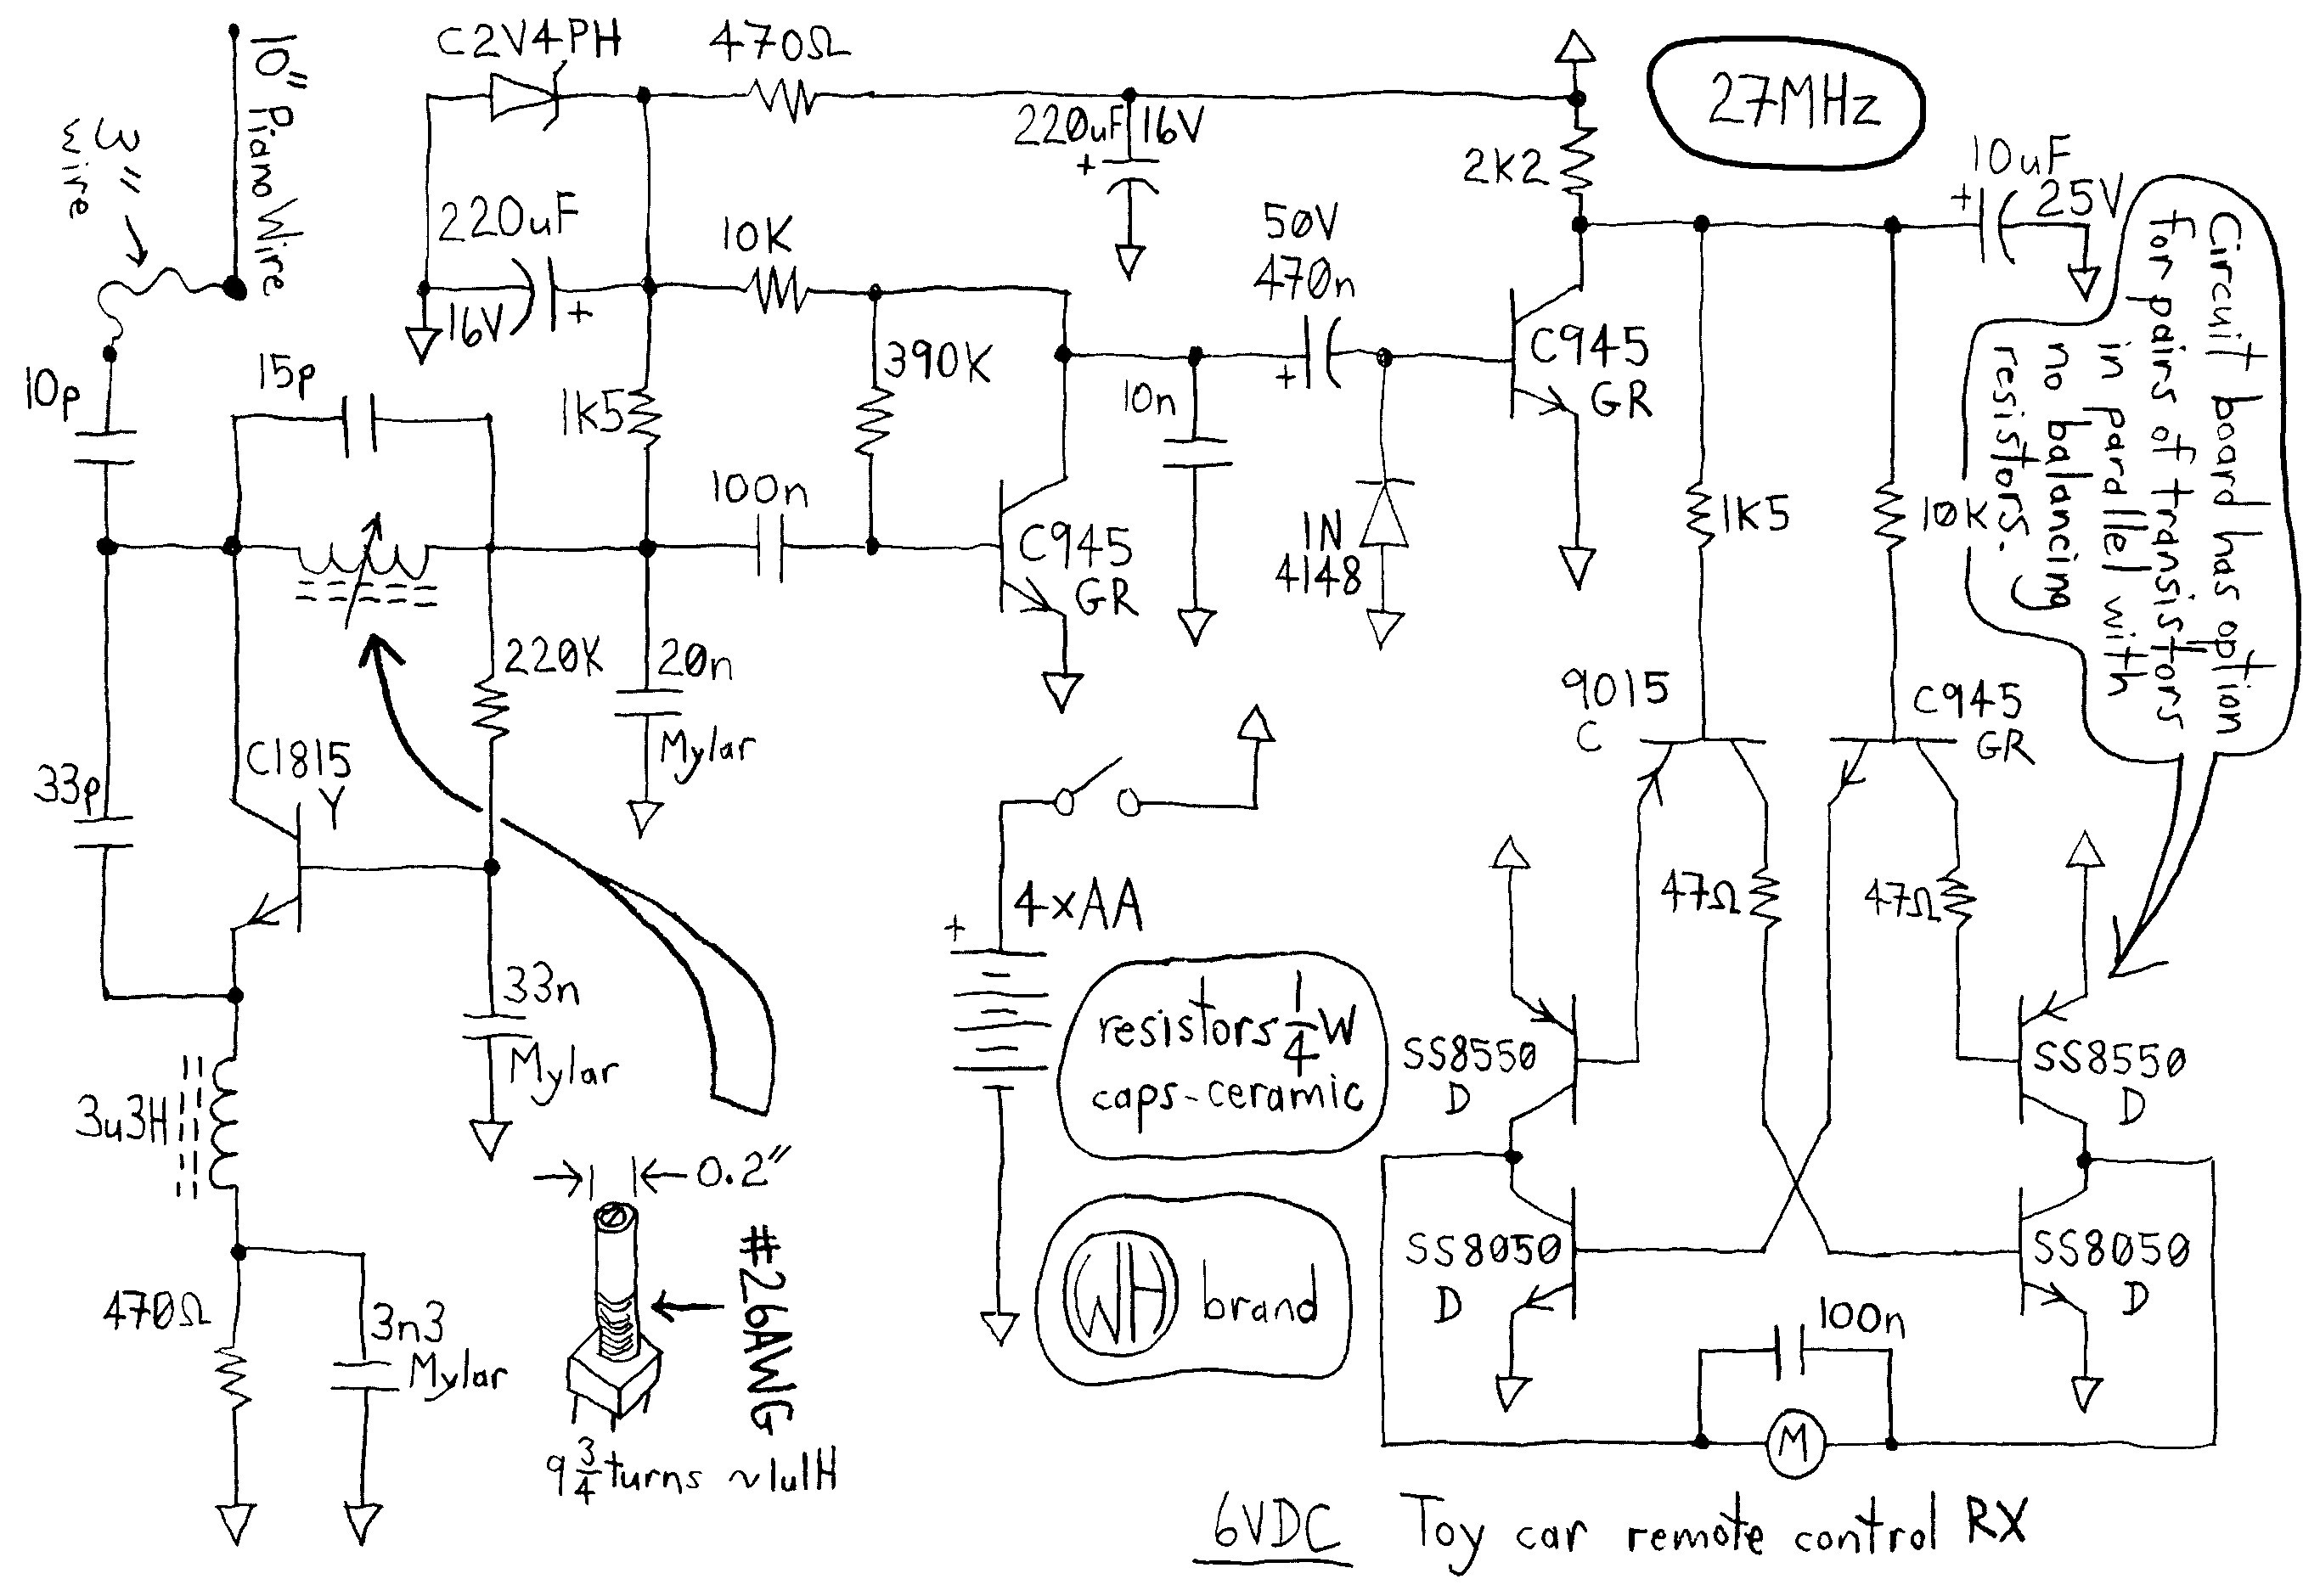 Toy Car Remote Control Circuit Diagram Remotecontrolcircuit Drawing At